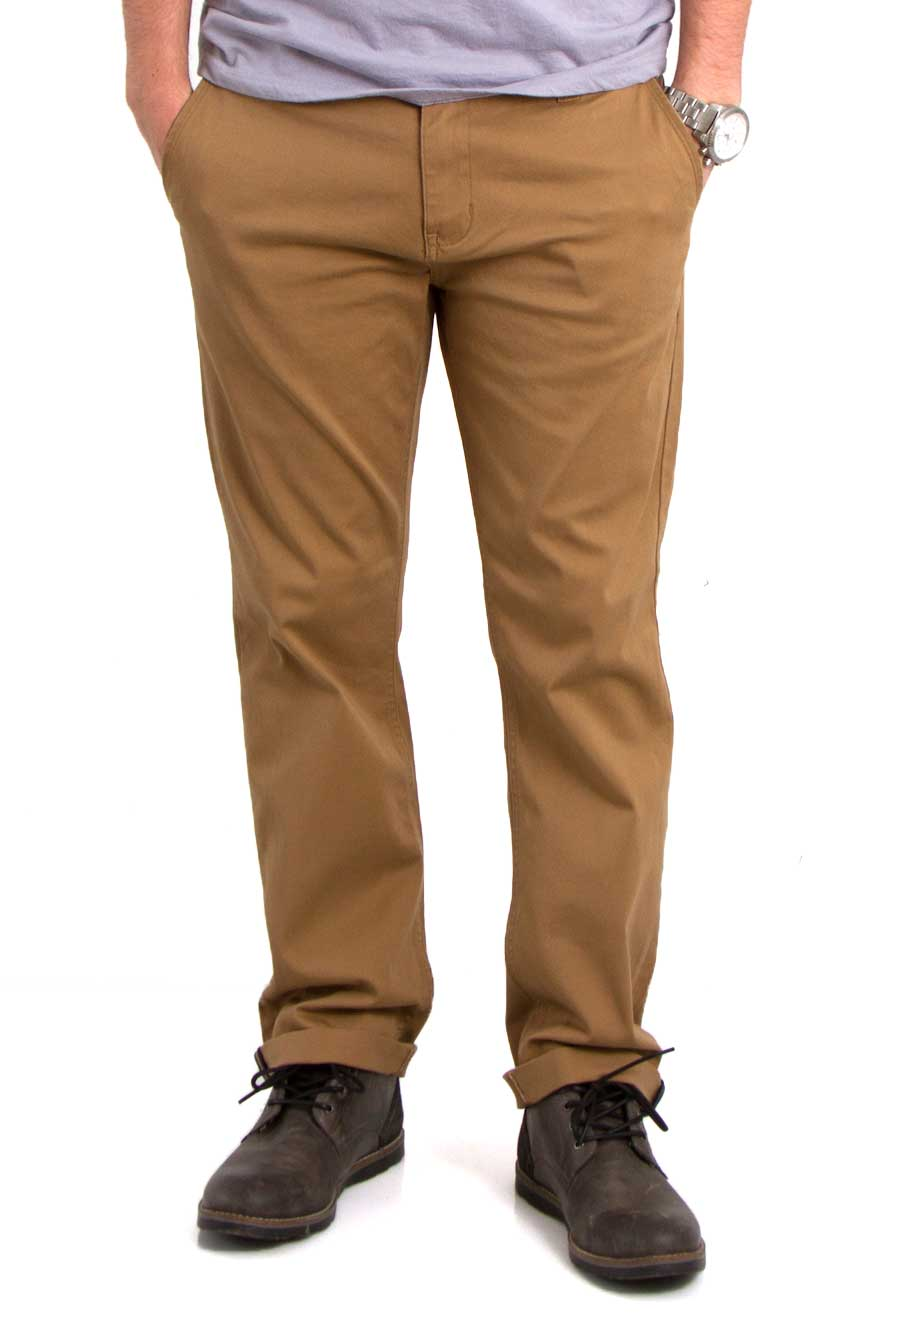 Chino Jeans 1897 stretch twill chino pants for men 0gle0231st-tob VPCEAGQ